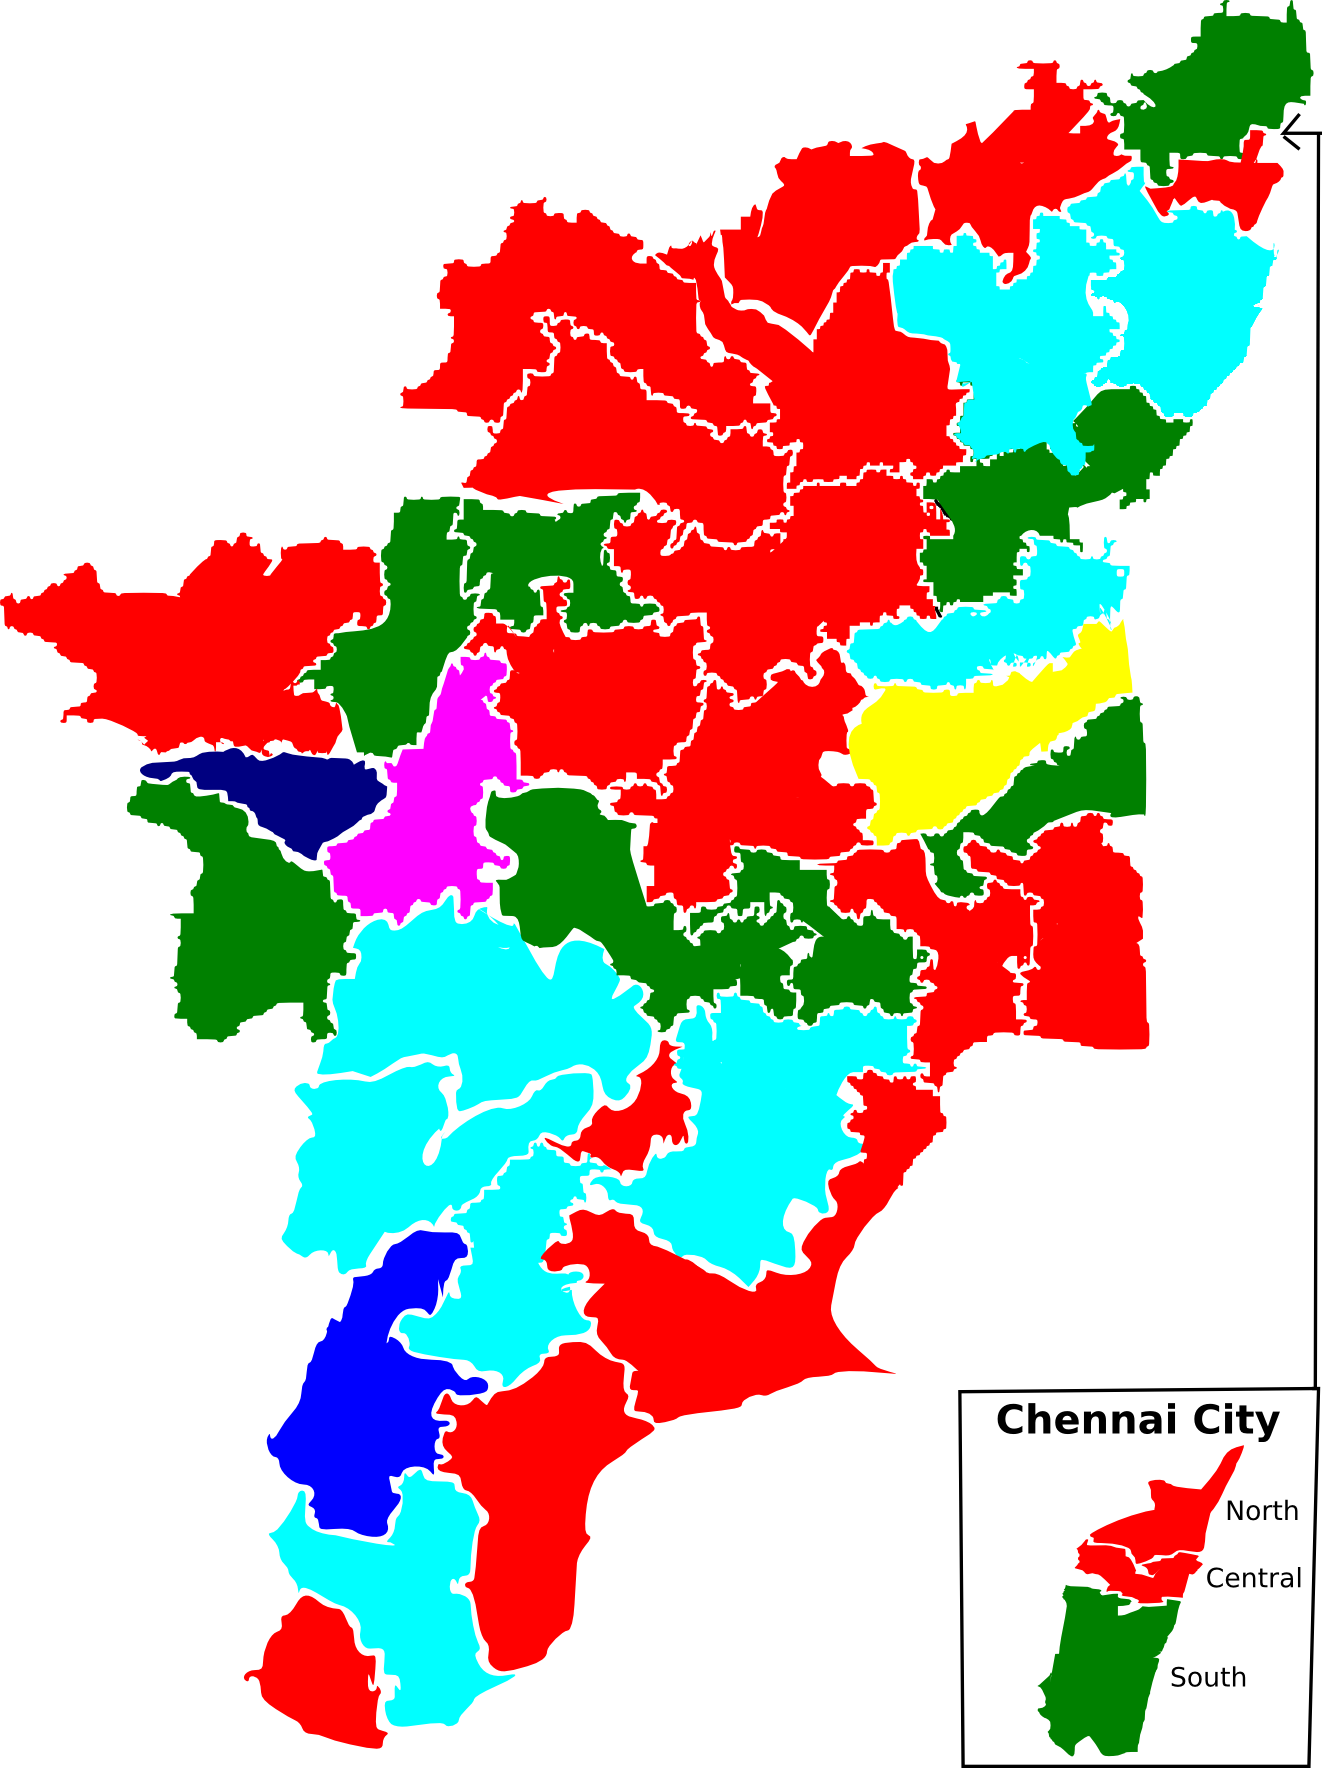 File:2009 tamil nadu lok sabha election map by parties.png.